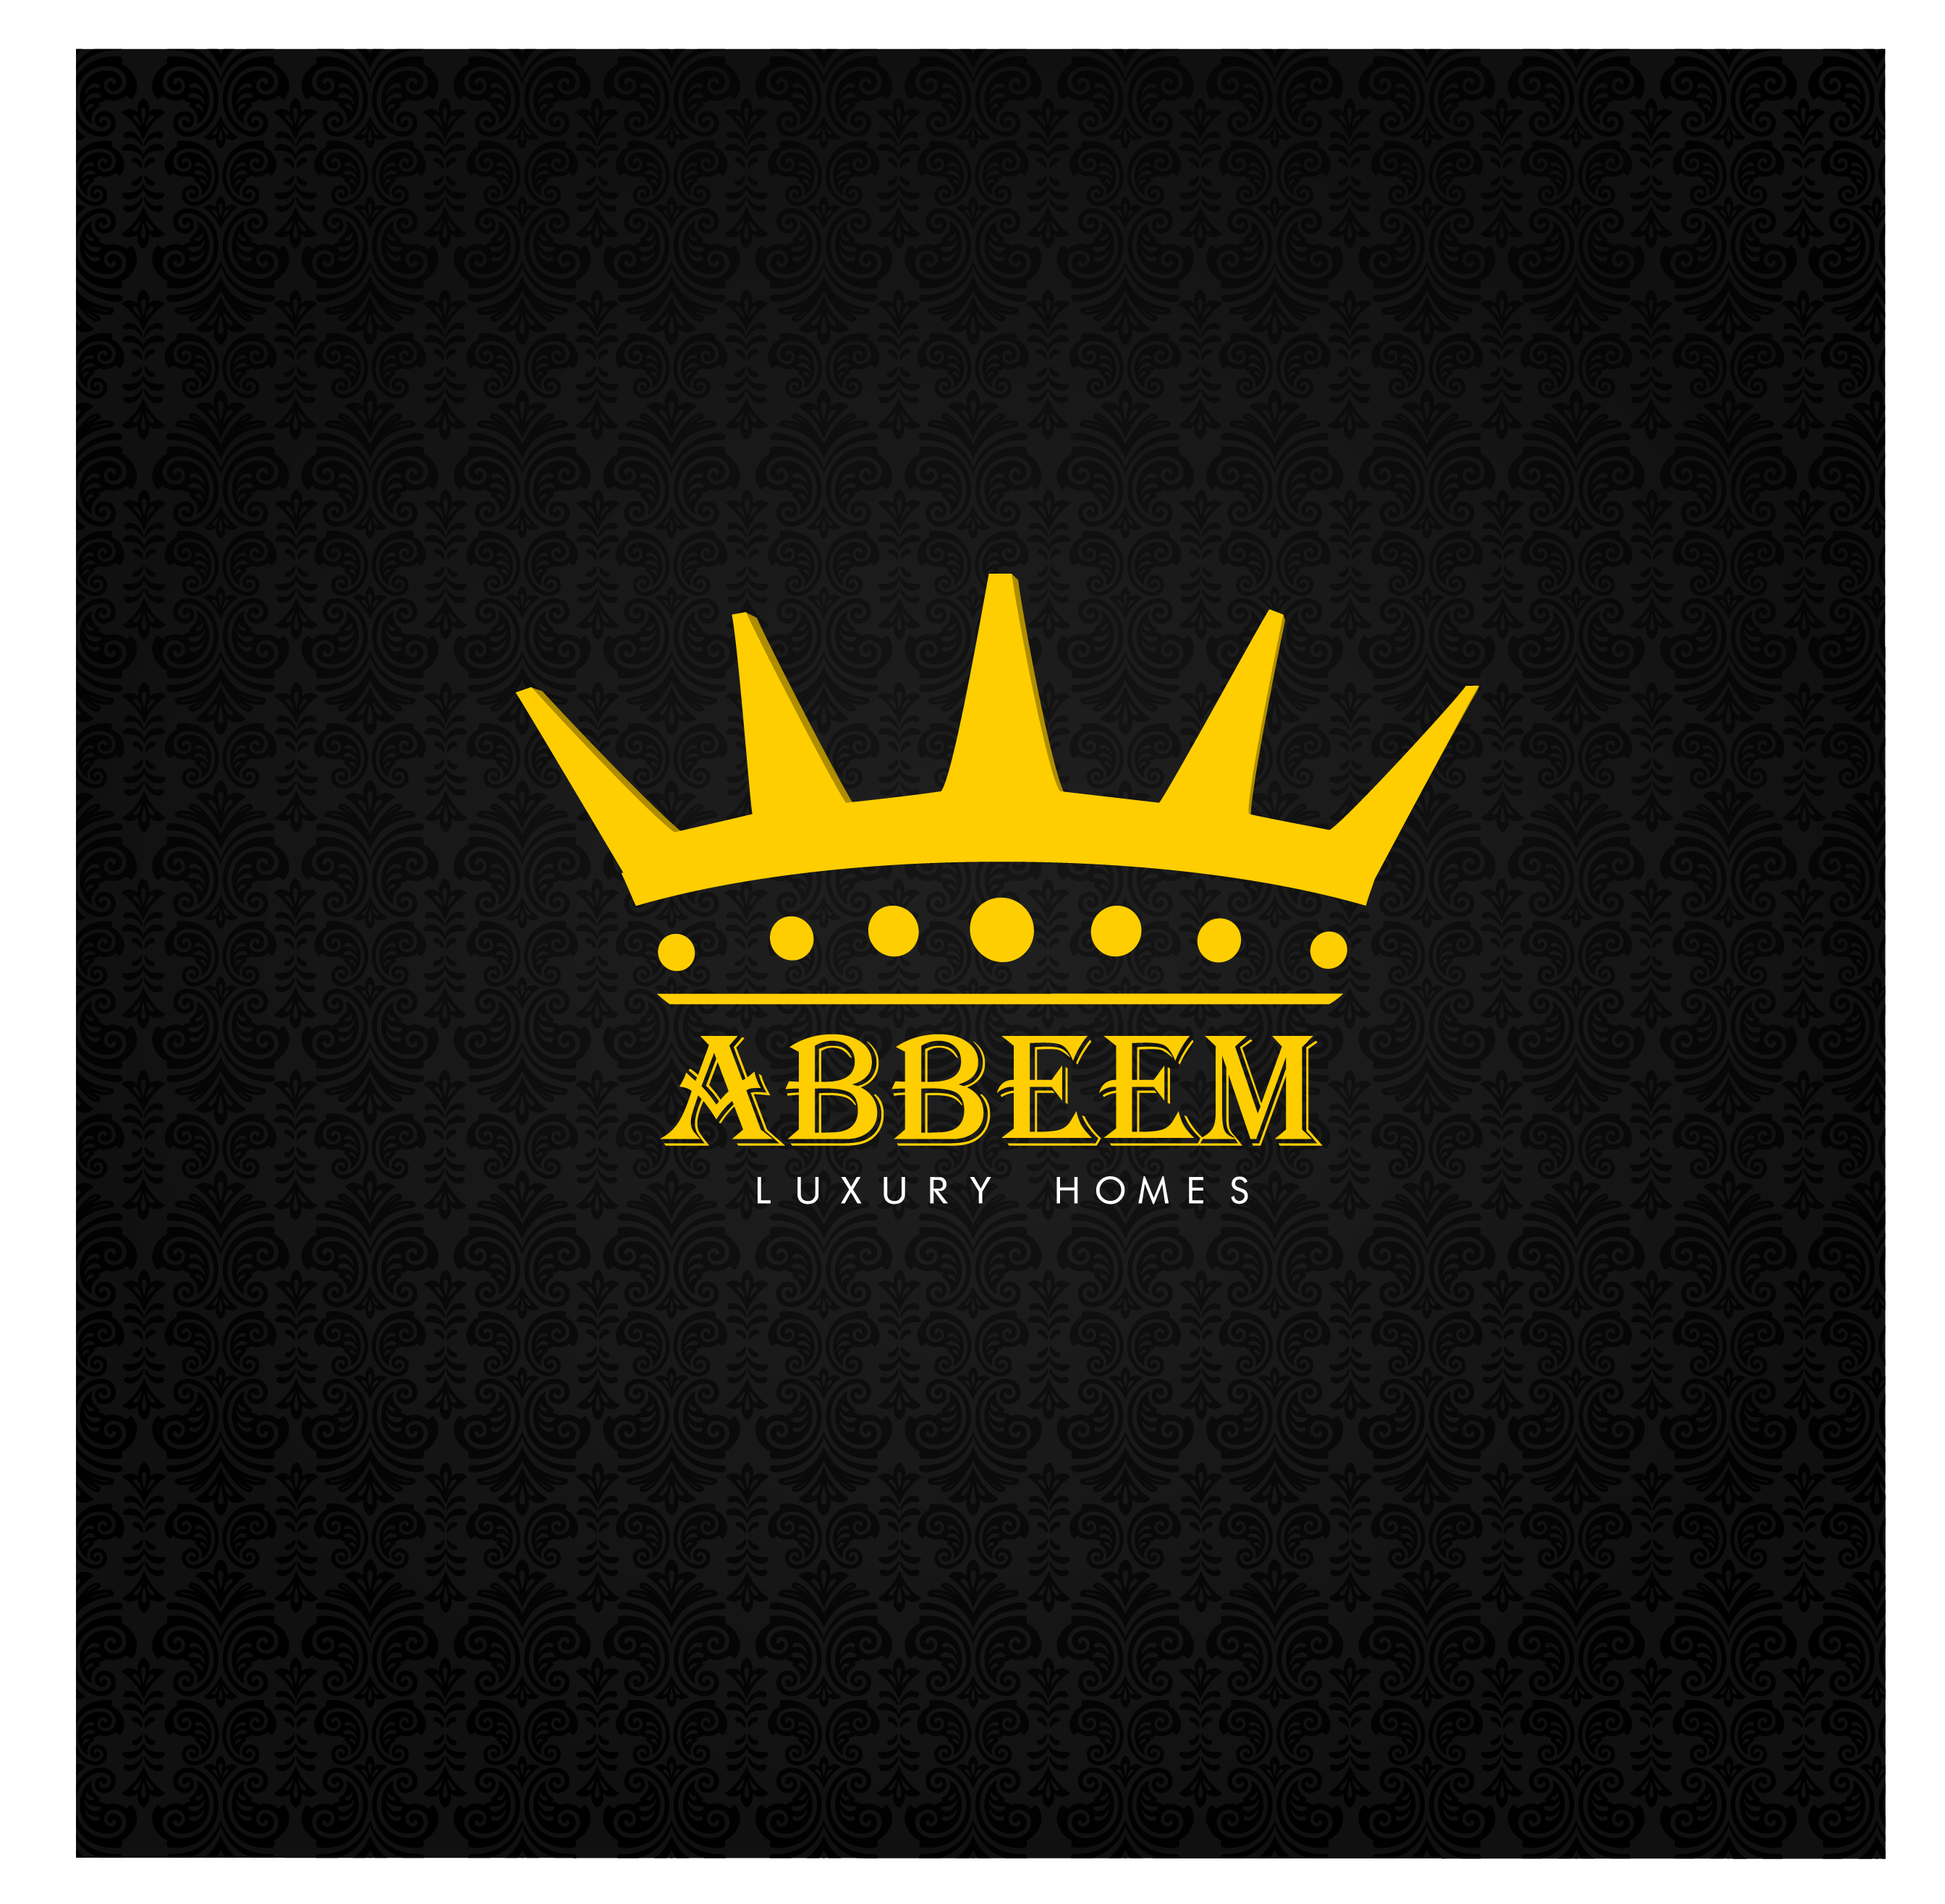 Logo Design by sgtmcoy - Entry No. 51 in the Logo Design Contest Luxury Logo Design for Abbeem.